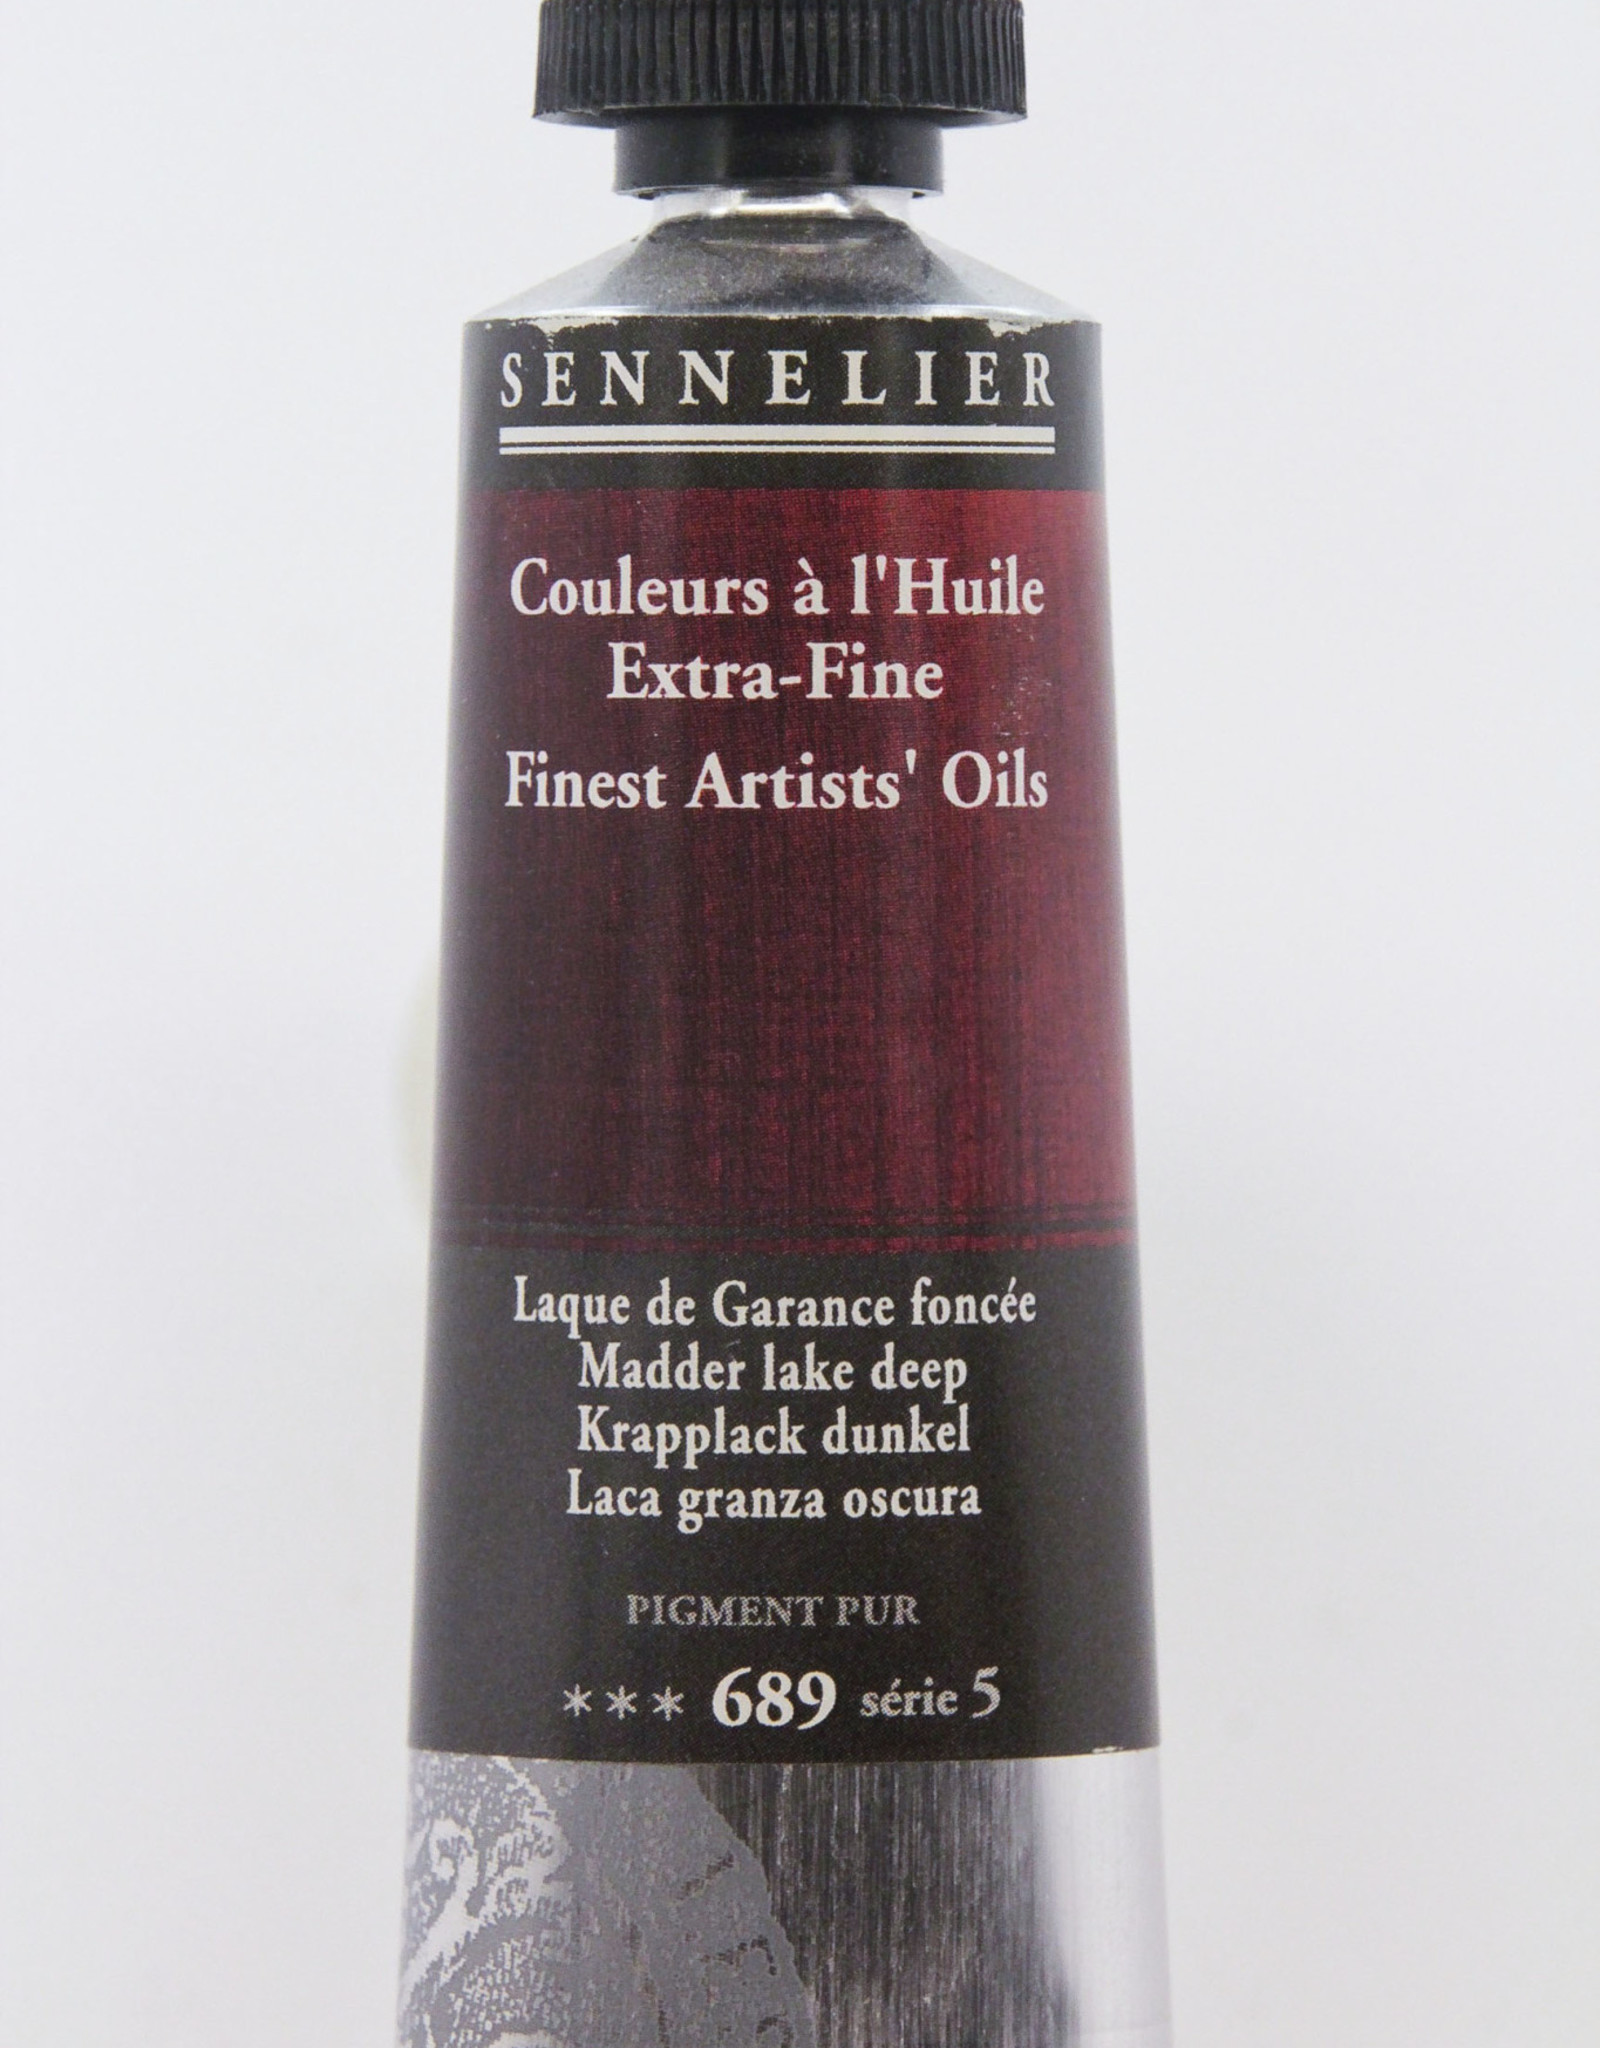 Sennelier, Fine Artists' Oil Paint, Madder Lake Deep, 689, 40ml Tube, Series 5